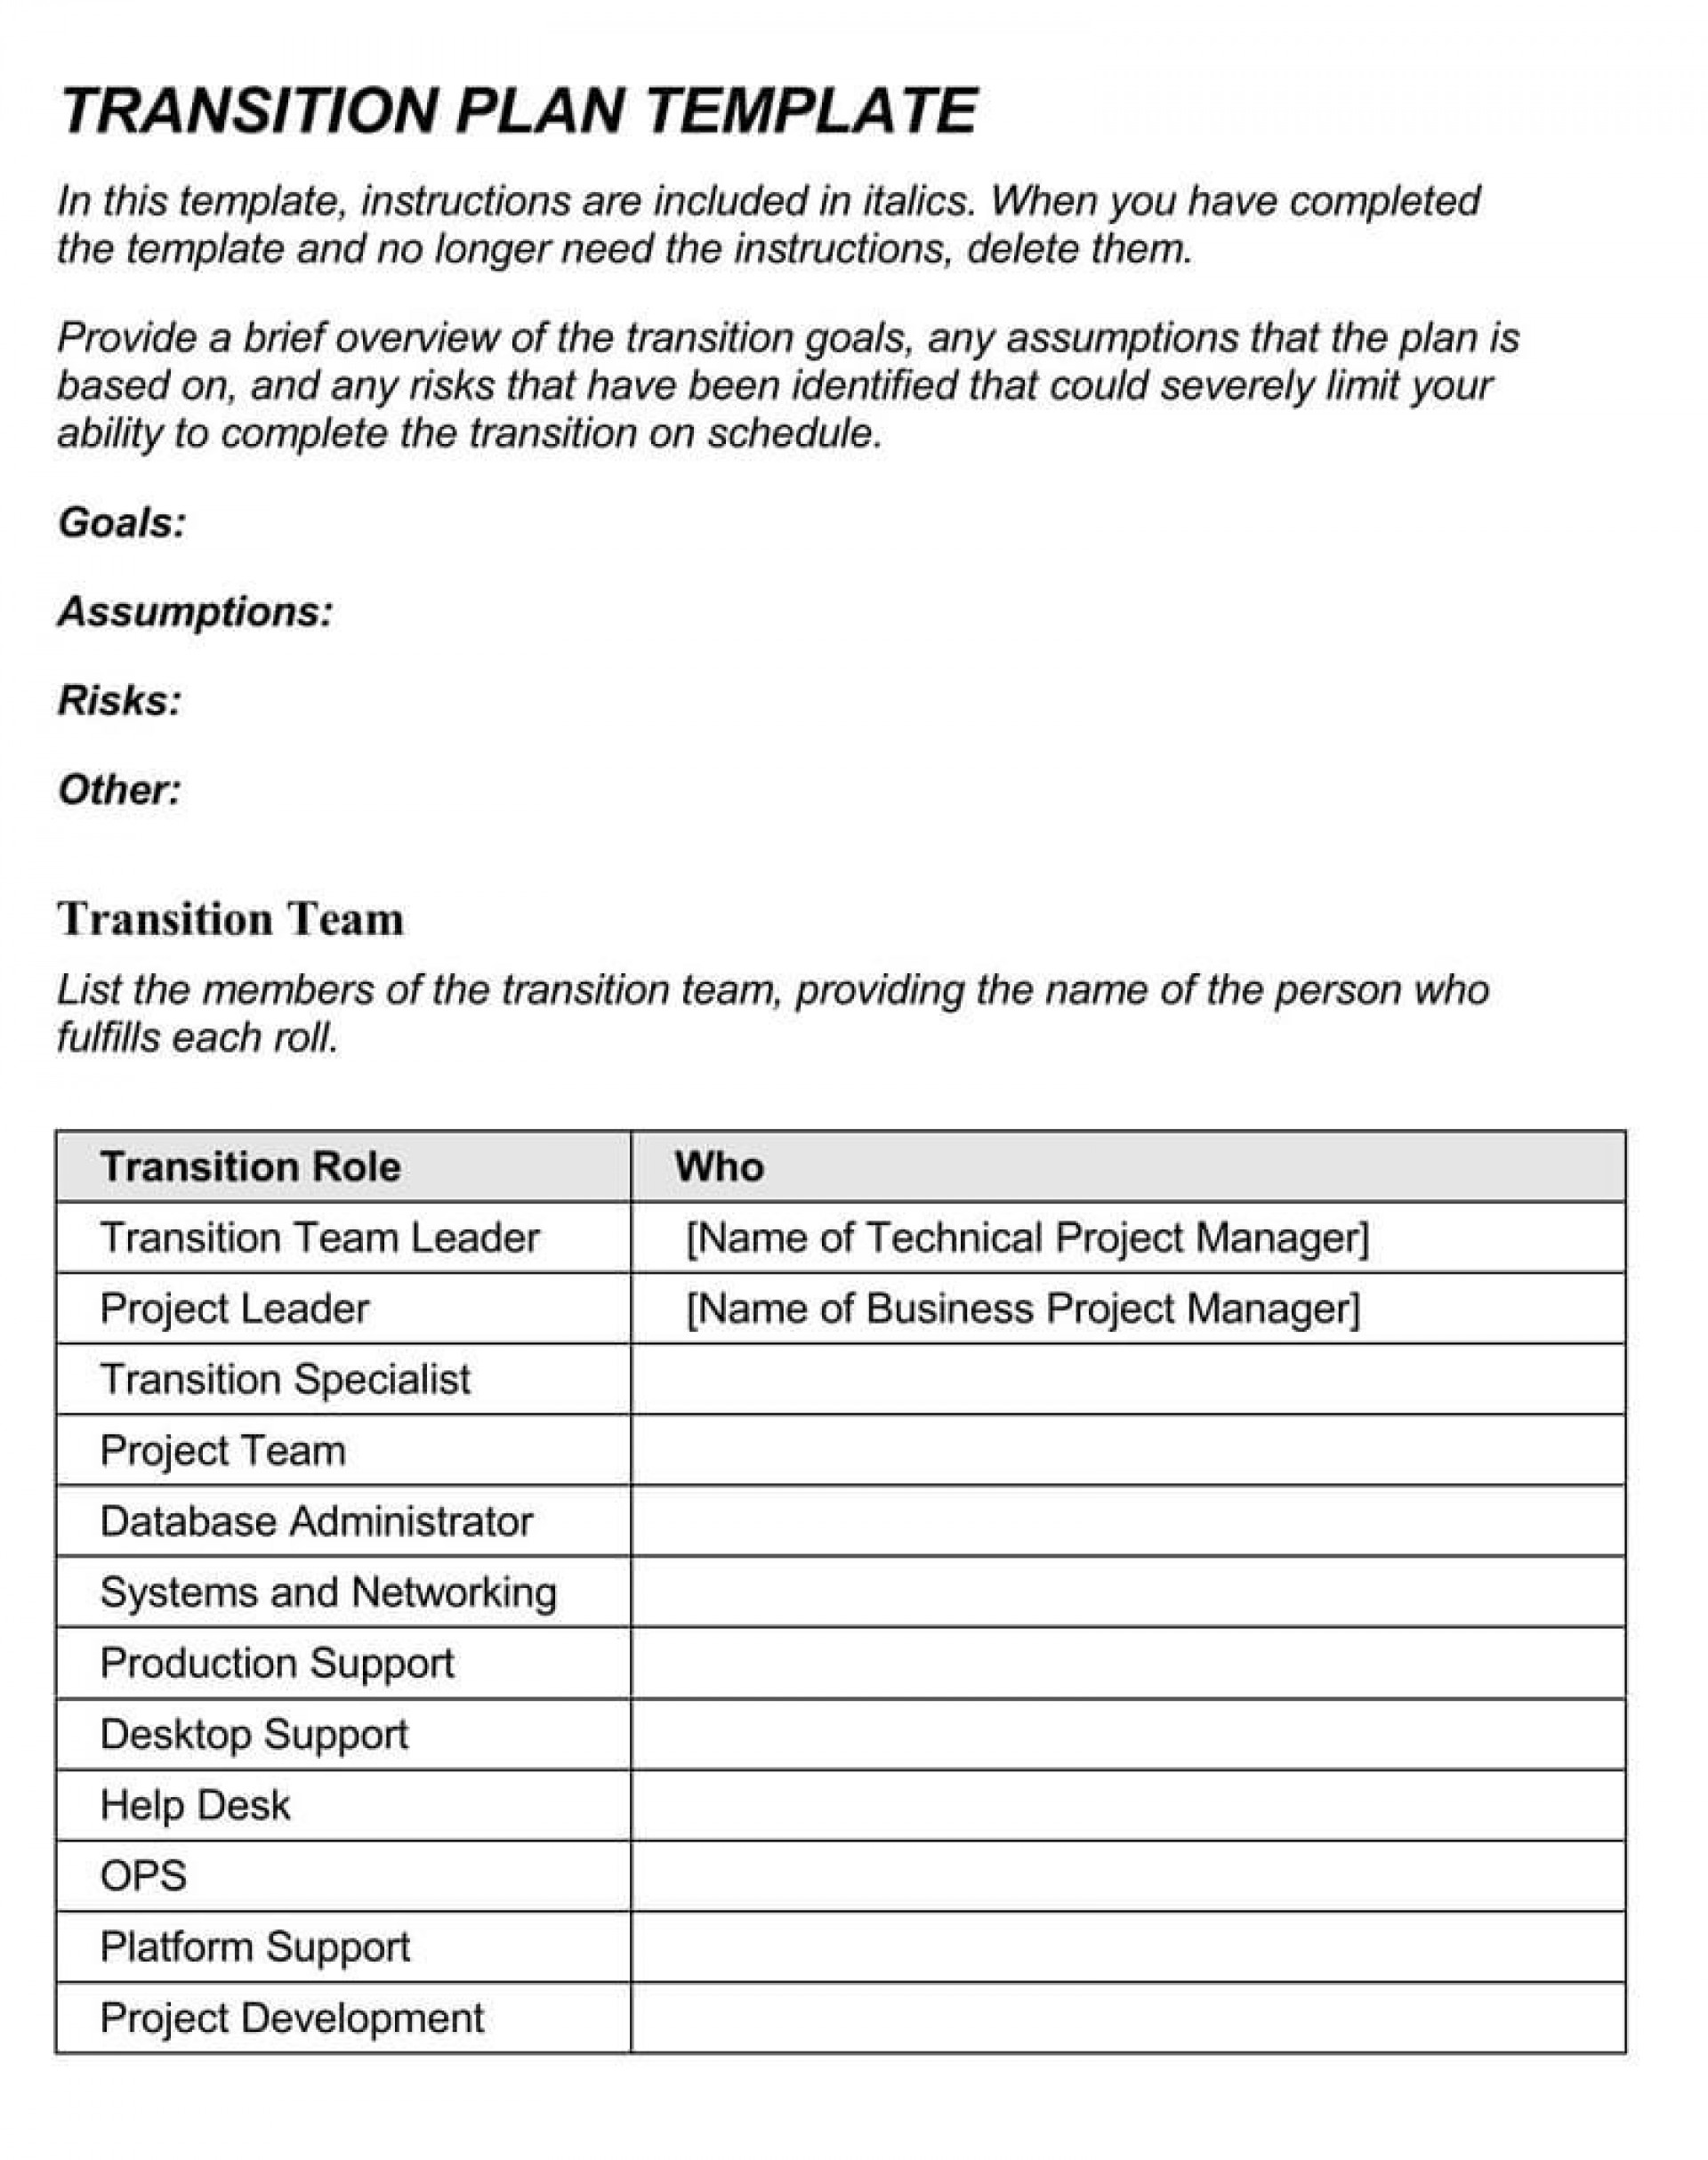 008 Marvelou Role And Responsibilitie Template Doc Concept  Google1920